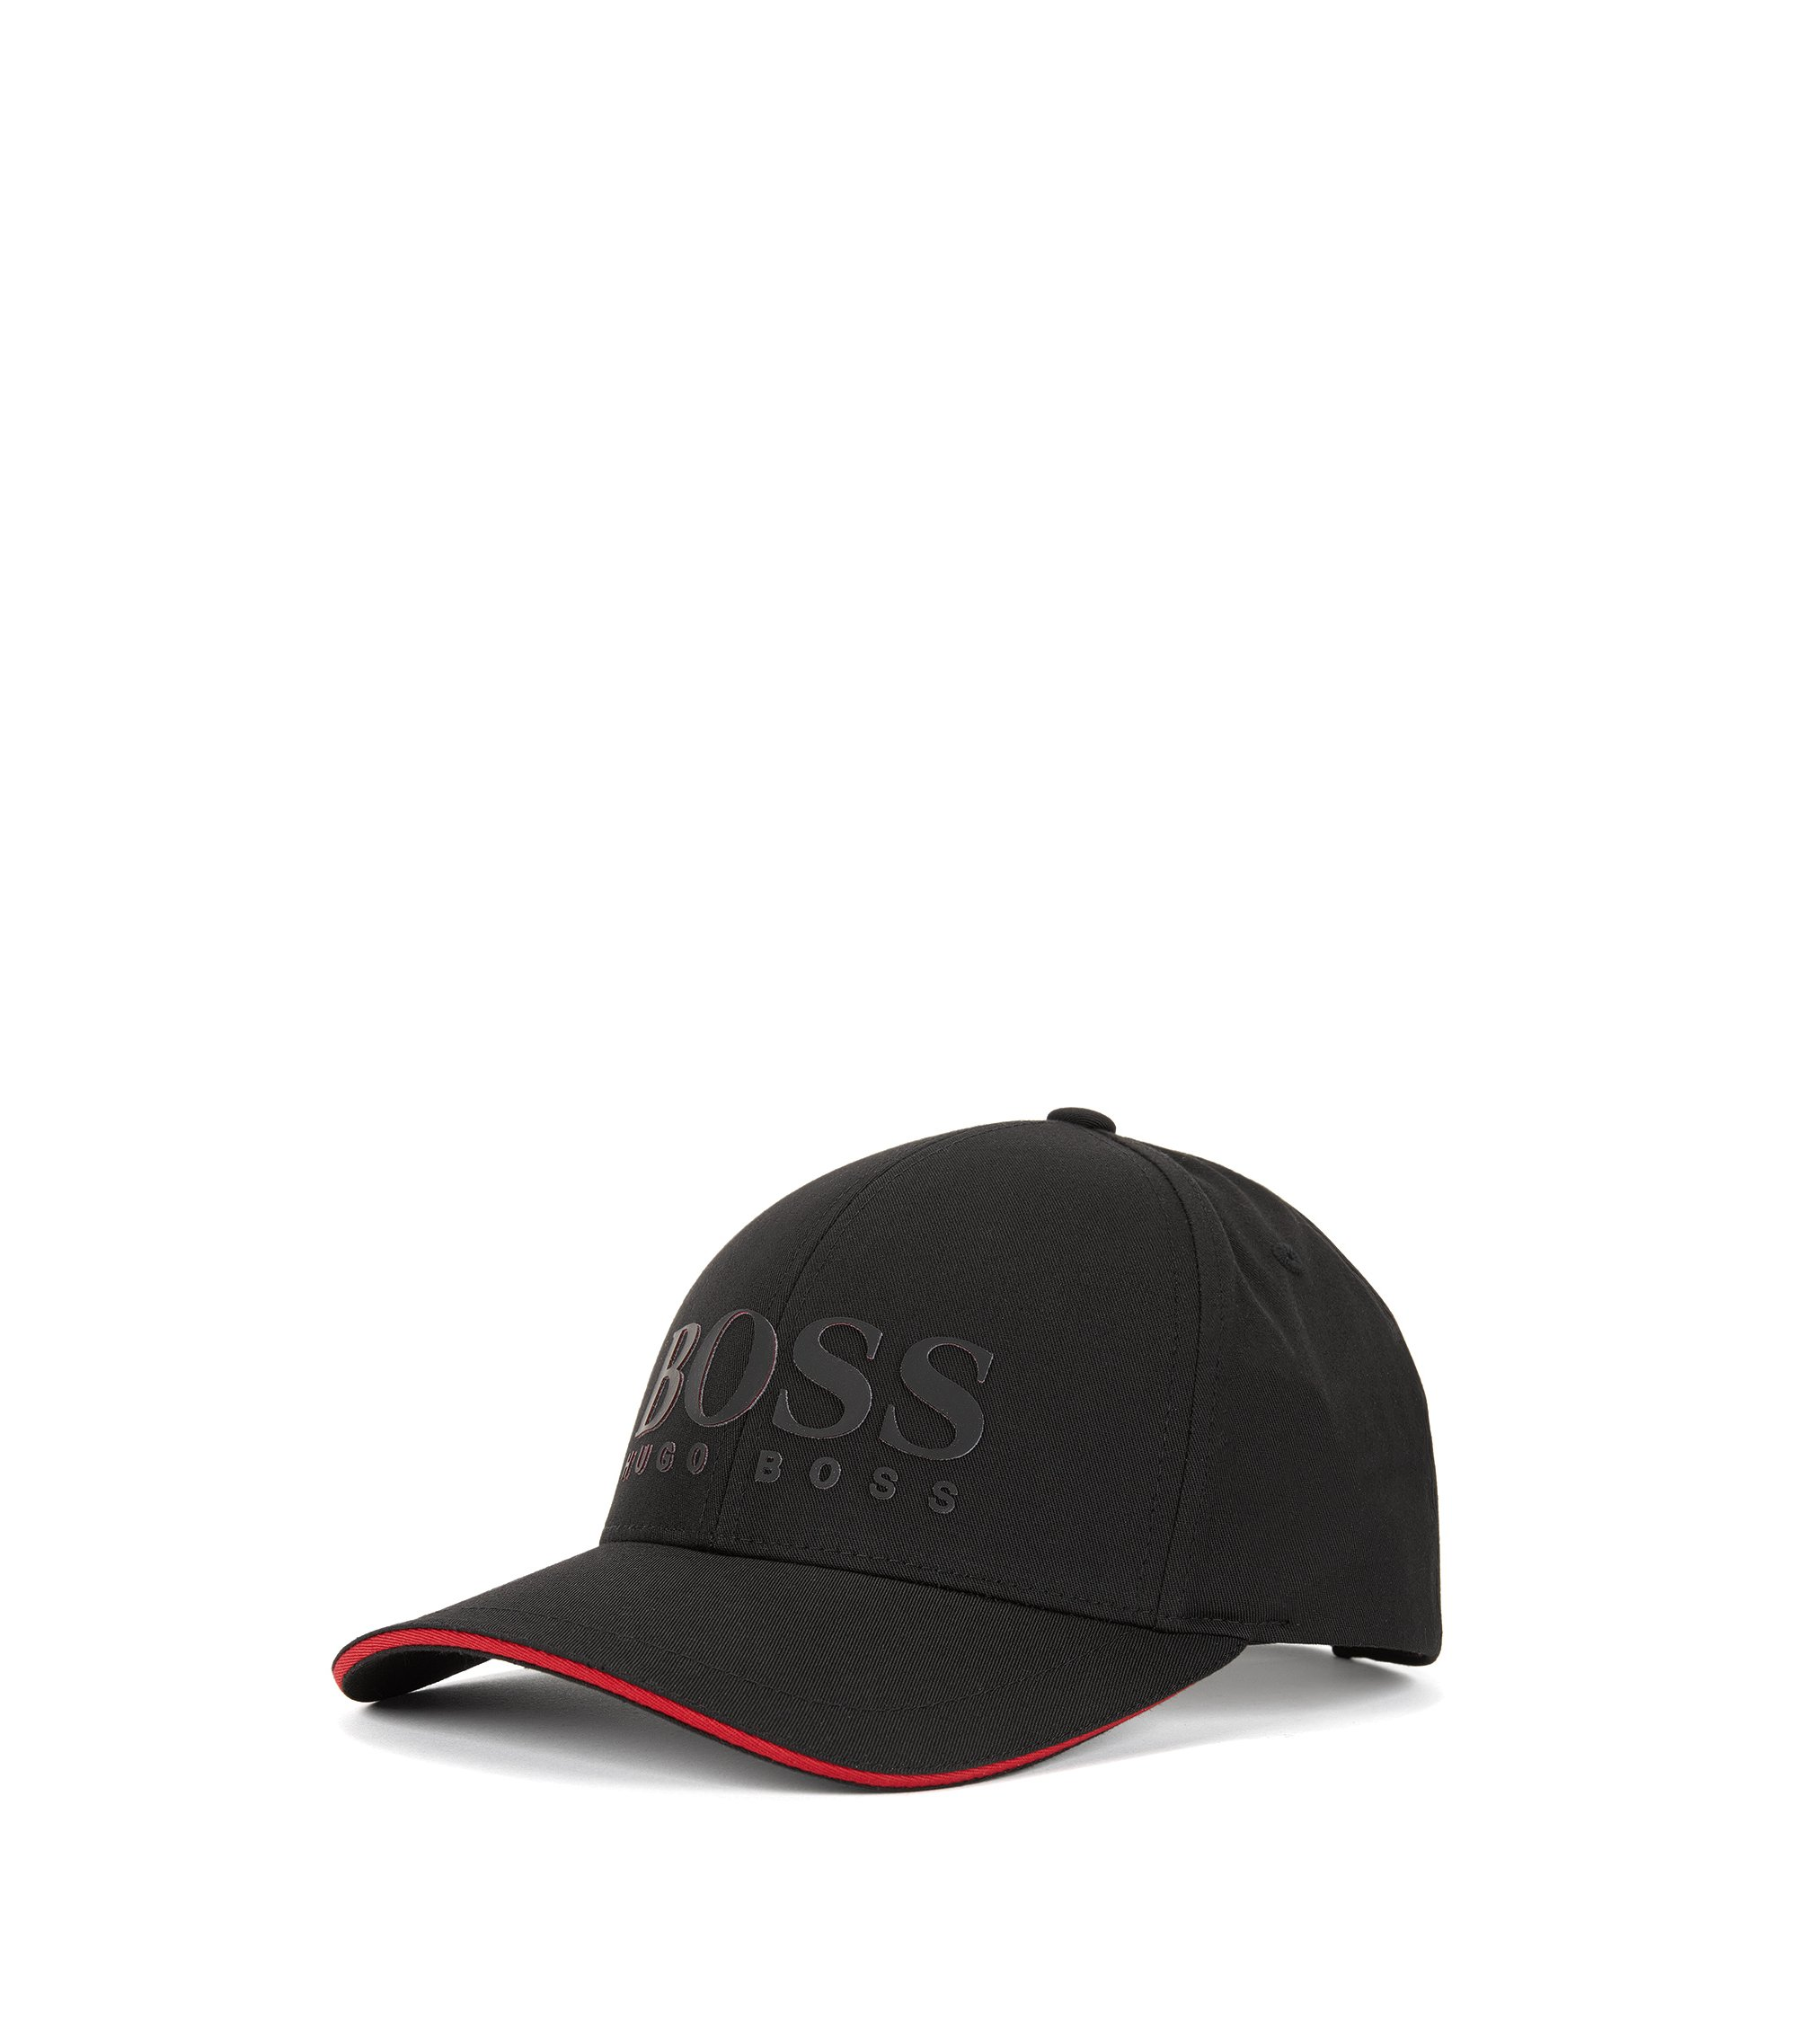 Logo Baseball Cap | BOSS Cap, Black